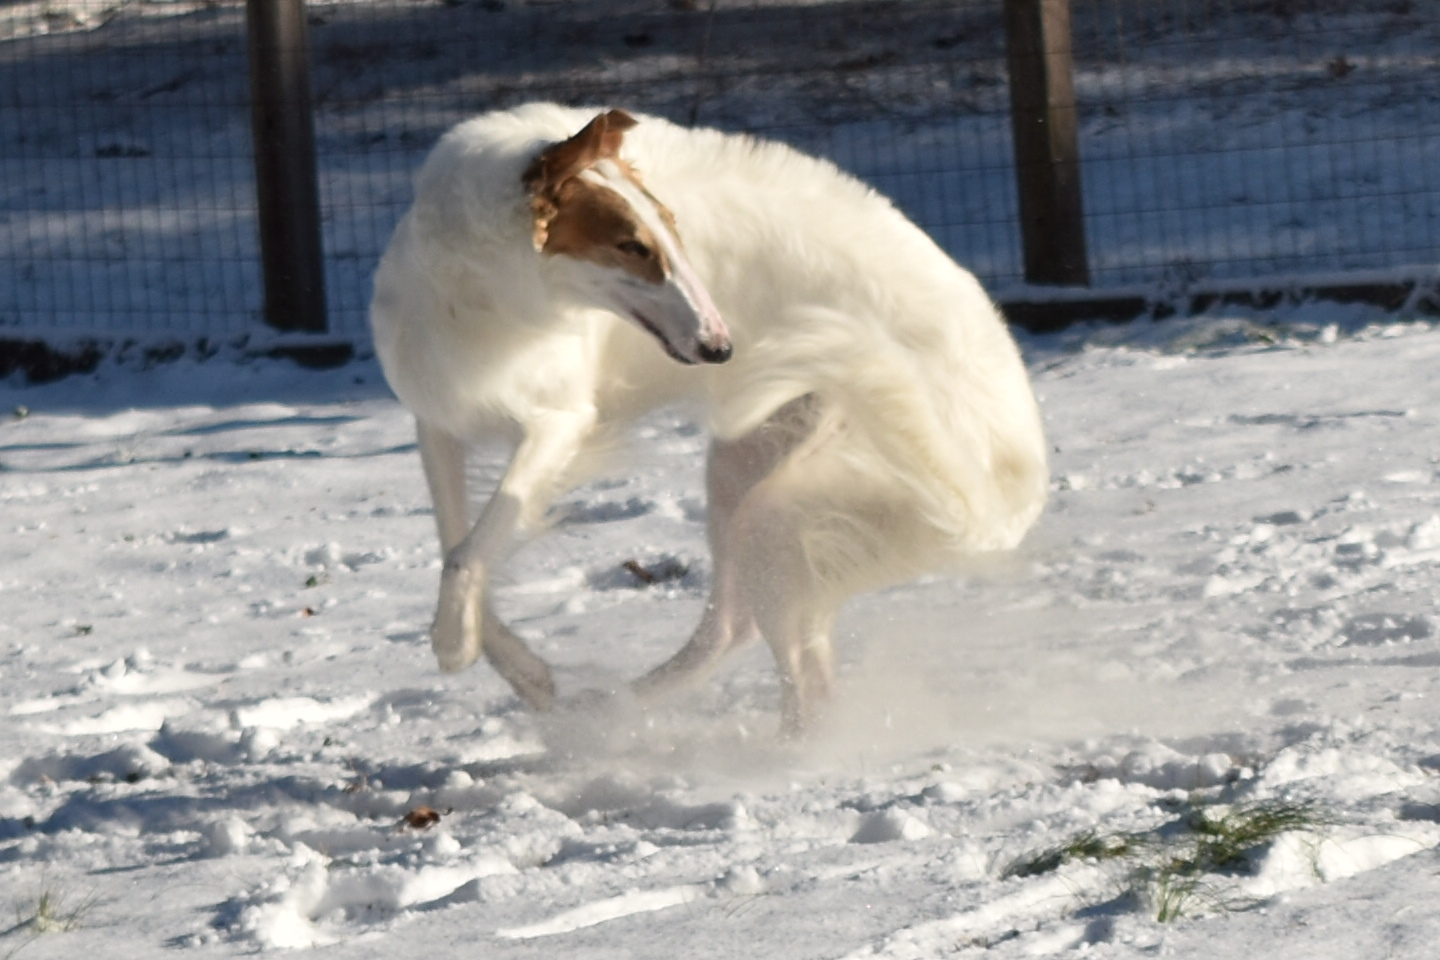 "<div class=""meta image-caption""><div class=""origin-logo origin-image wtvd""><span>WTVD</span></div><span class=""caption-text"">Vanilla the Borzoi dancing a pirouette in the snow. (Margaret Piocne - ABC11 Eyewitness)</span></div>"